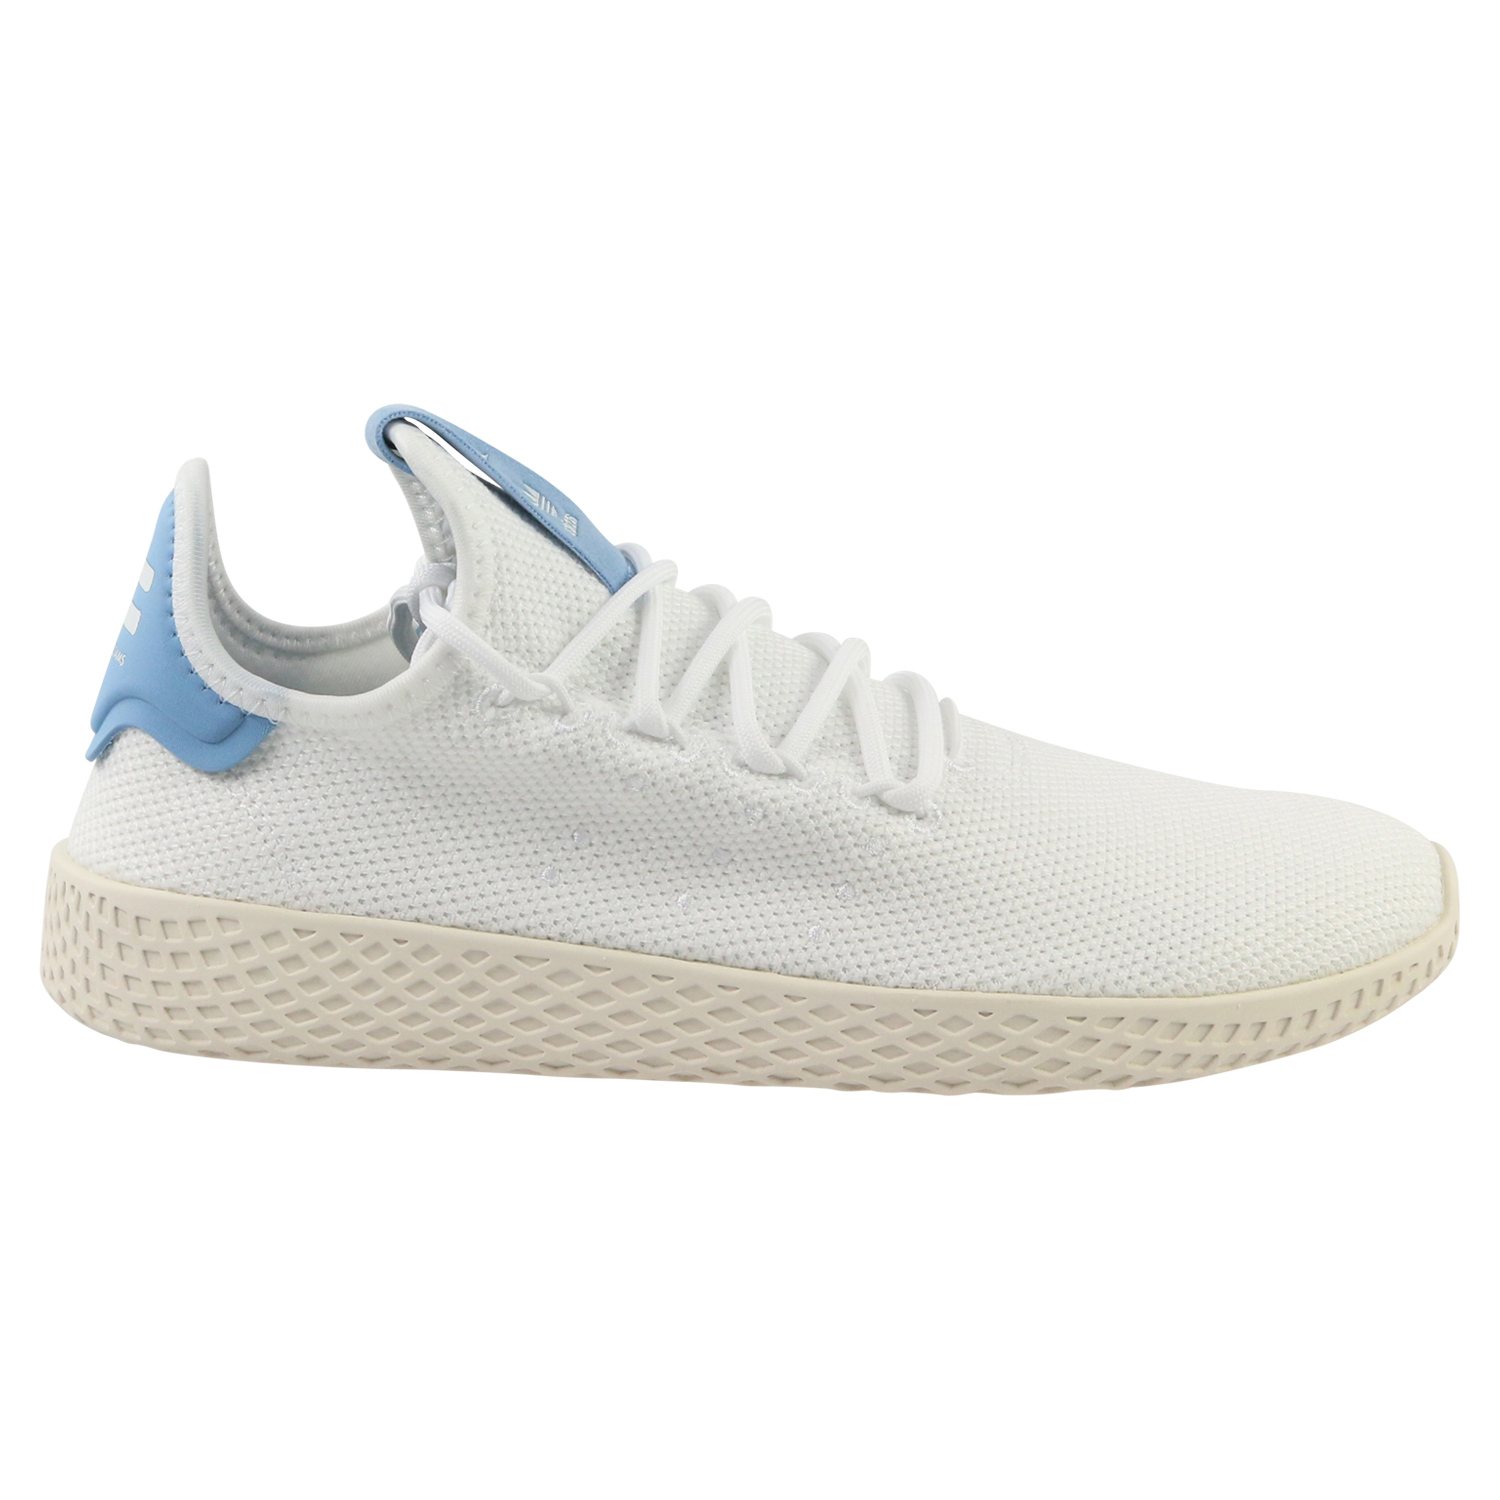 45cebbe79ca795 Adidas Originals Pharrell Williams Tennis HU Junior Schuhe Sneaker ...